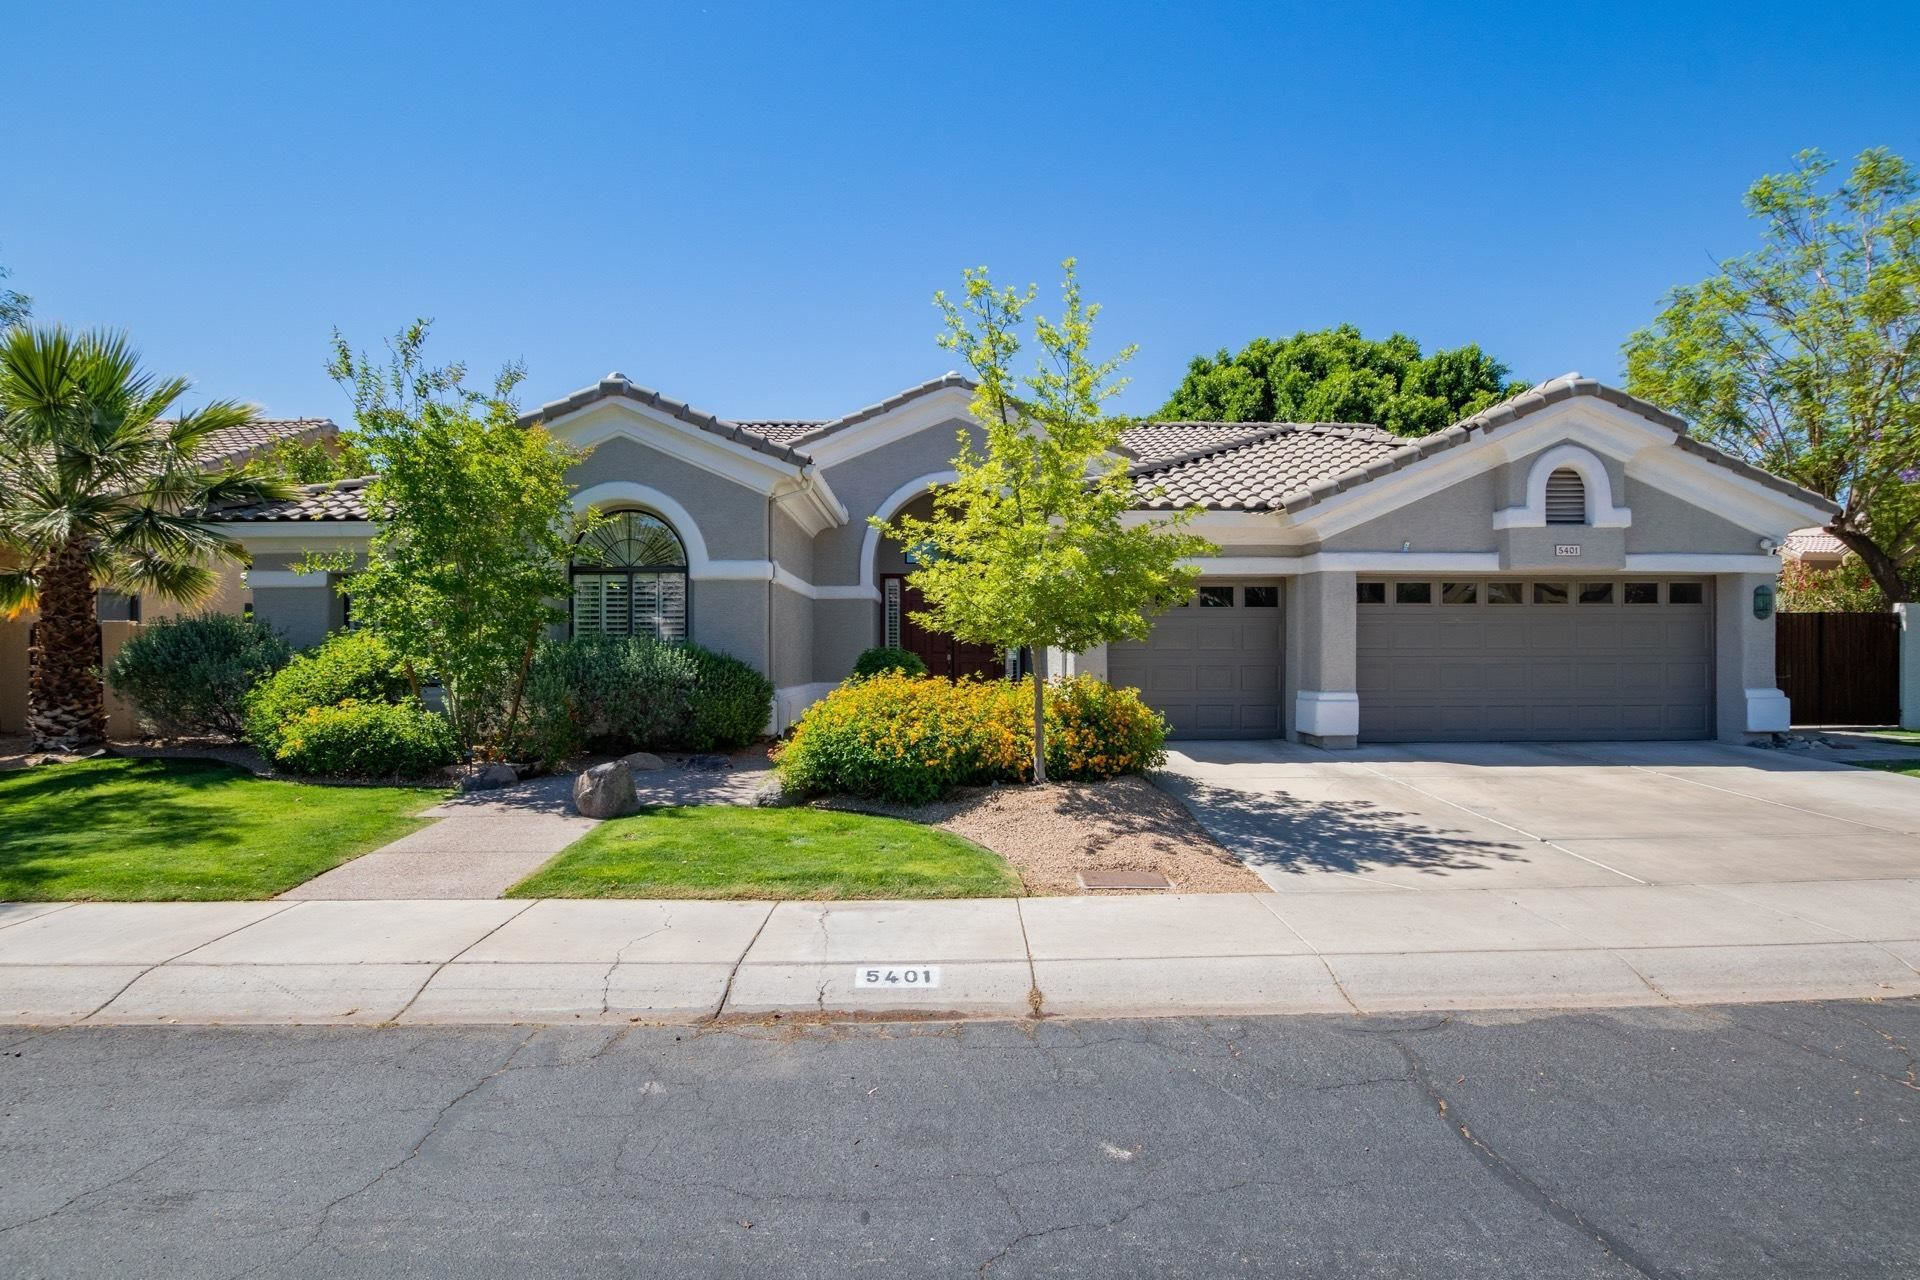 Photo of 5401 E ALAN Lane, Paradise Valley, AZ 85253 (MLS # 6229341)